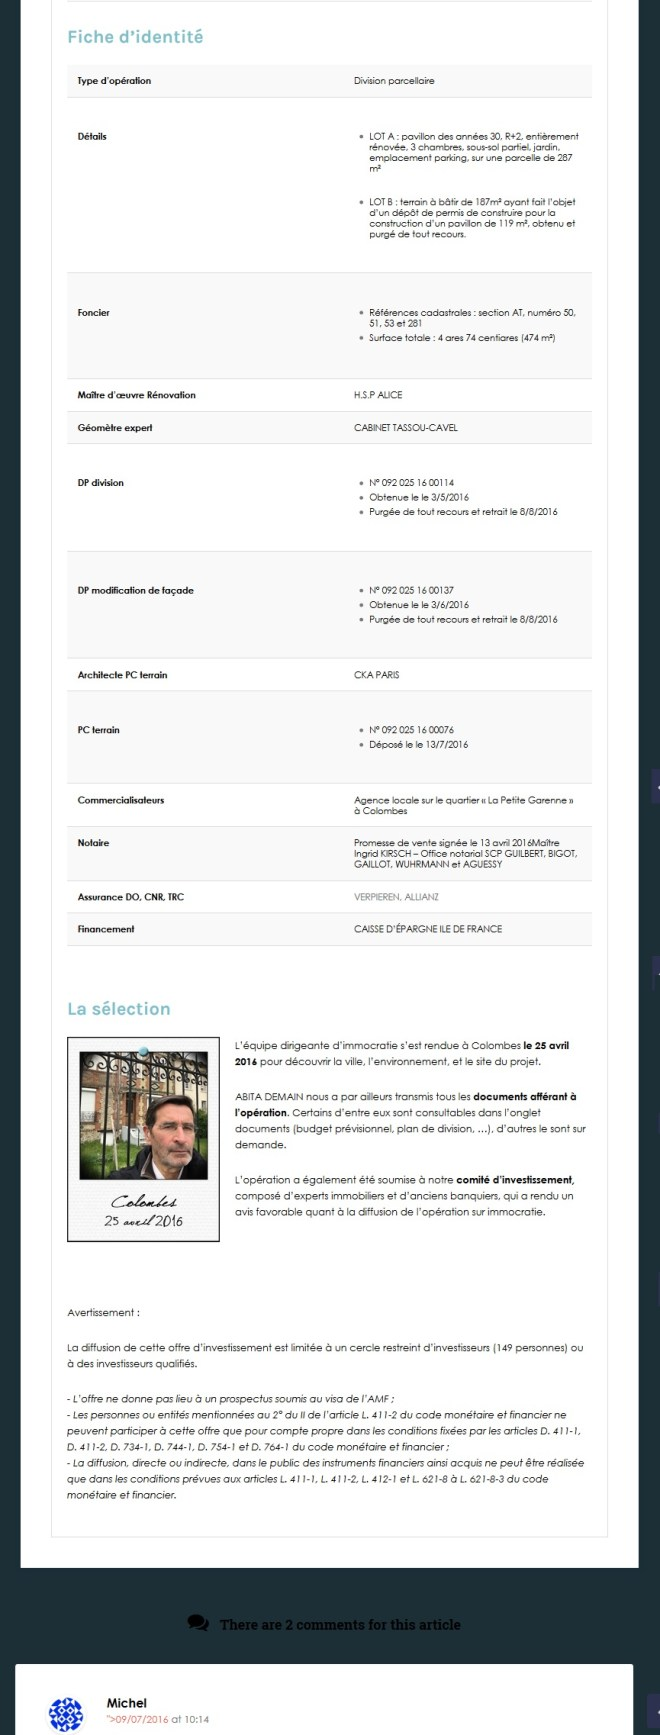 immocratie-crowdfunding-crowdlending-immobilier-projet-04